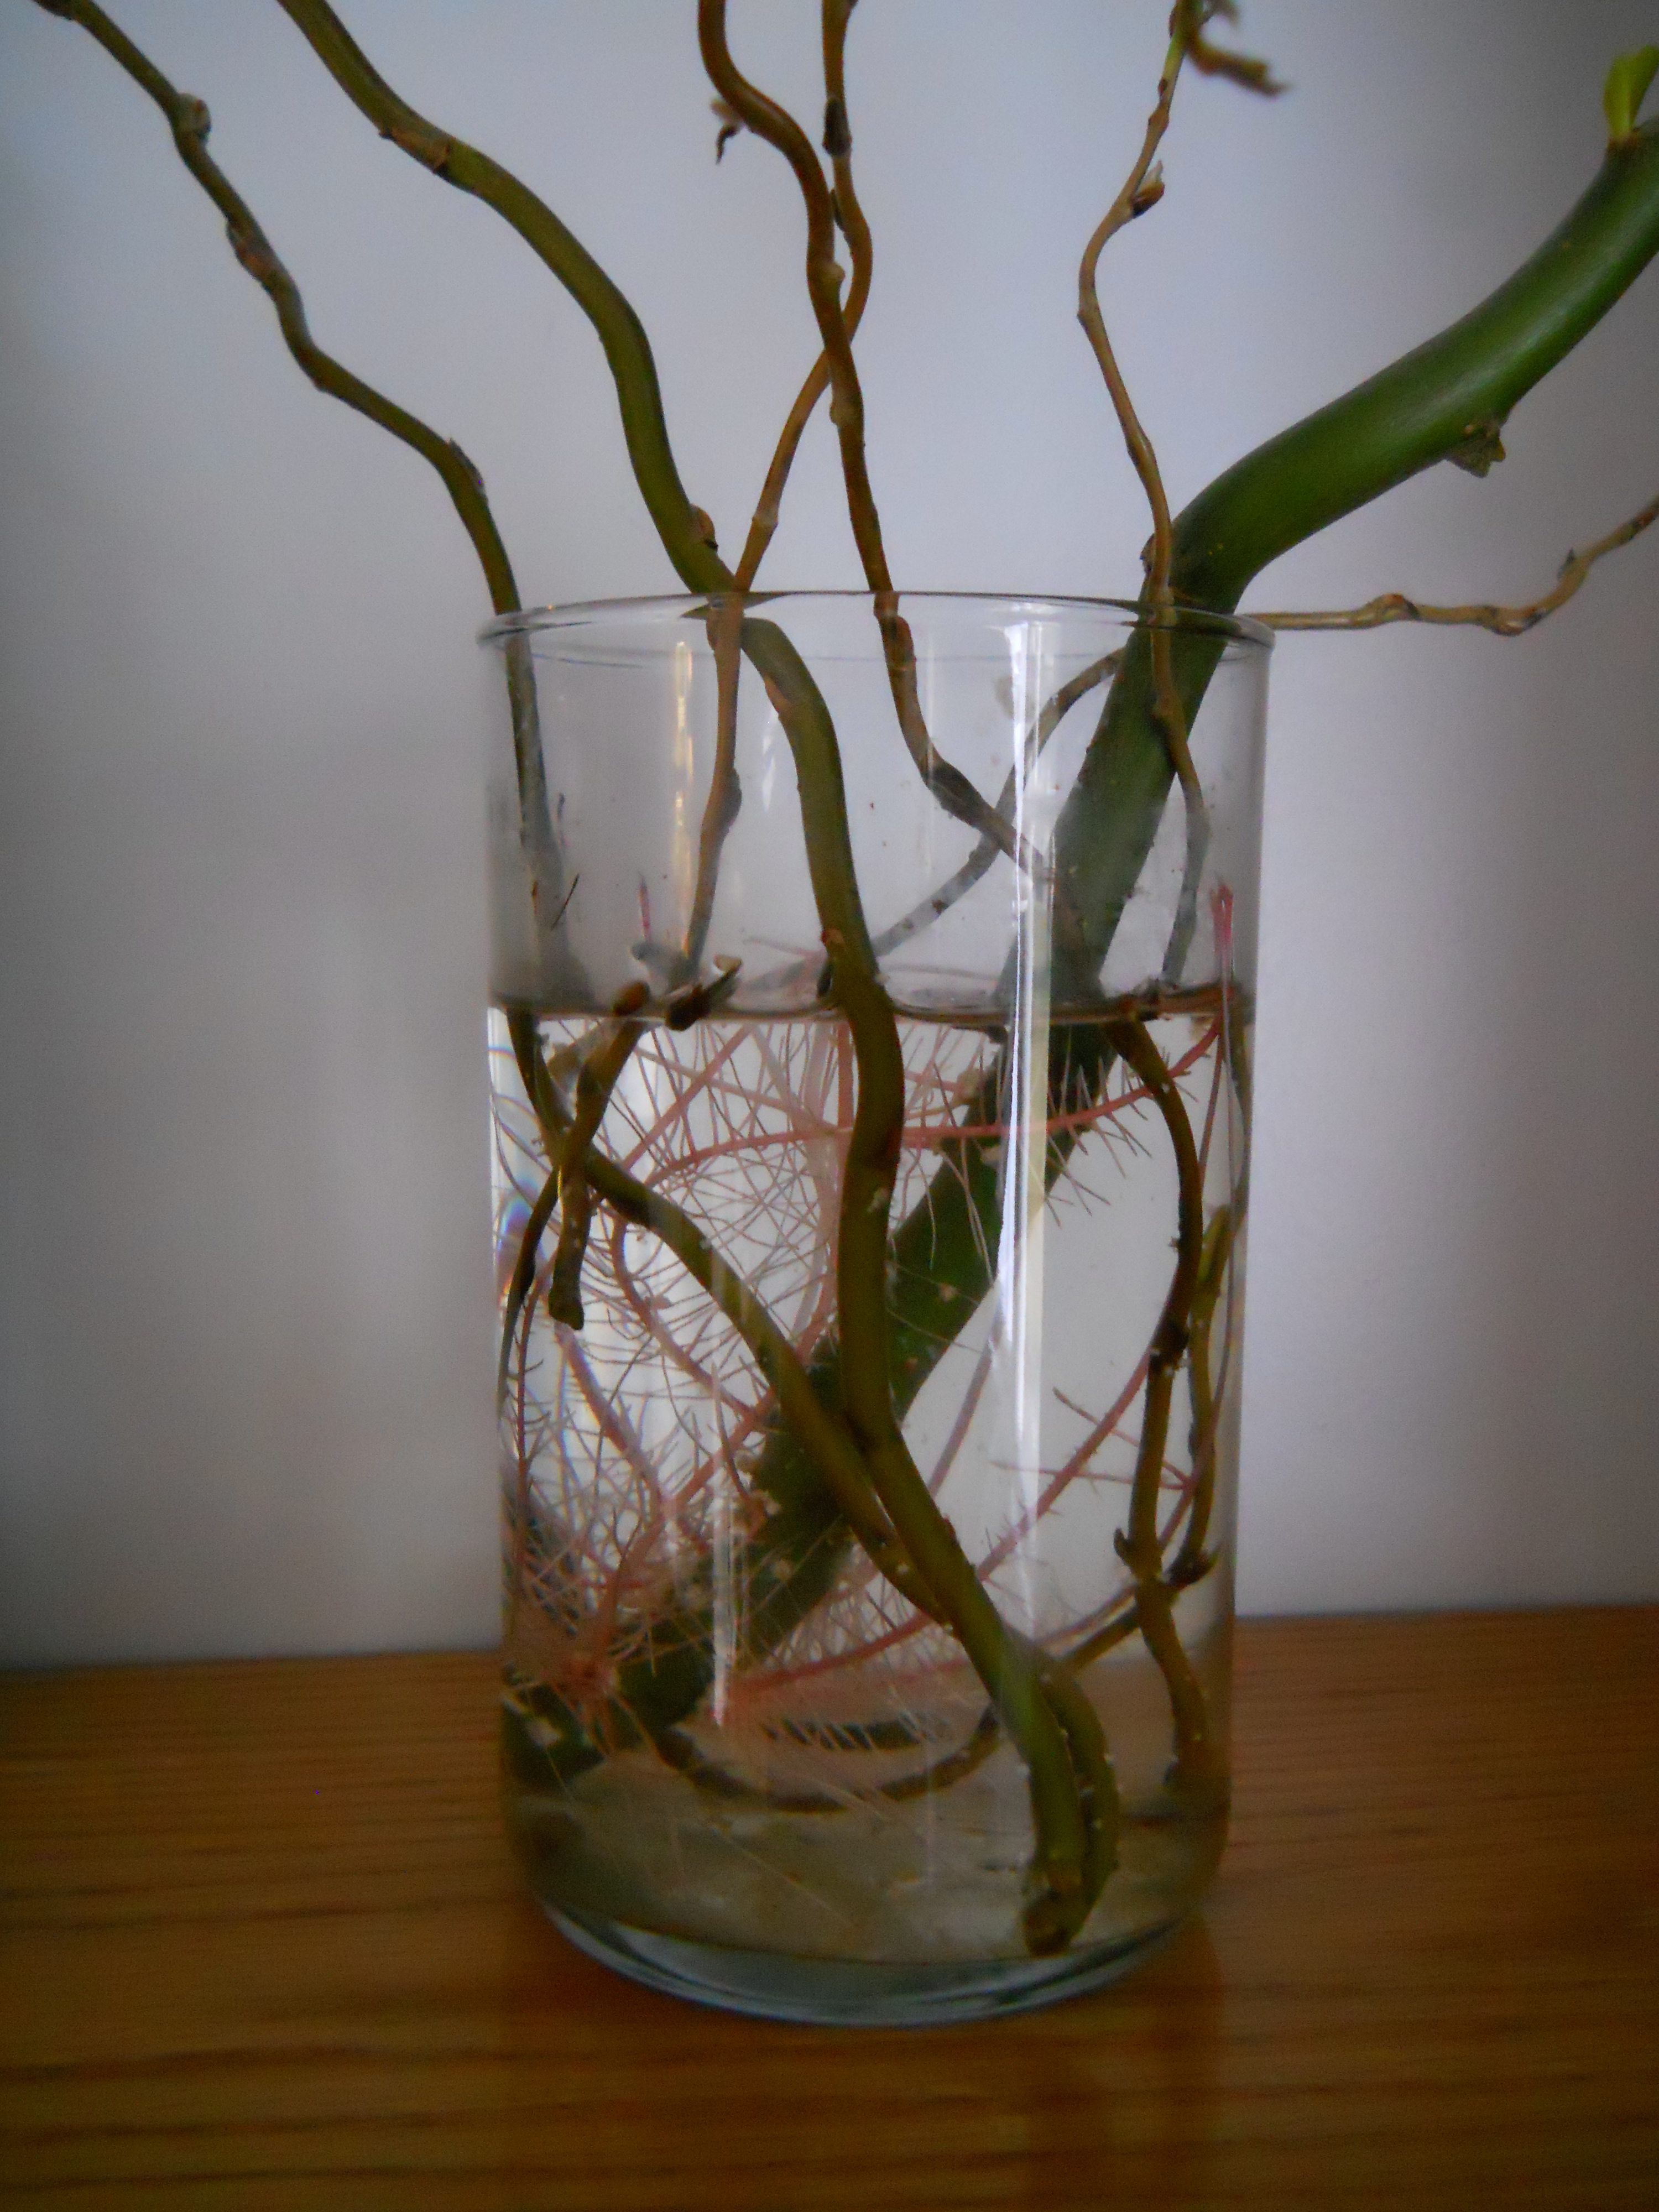 Willow water contains rooting stimulant uconnladybugs blog photo by carol quish reviewsmspy